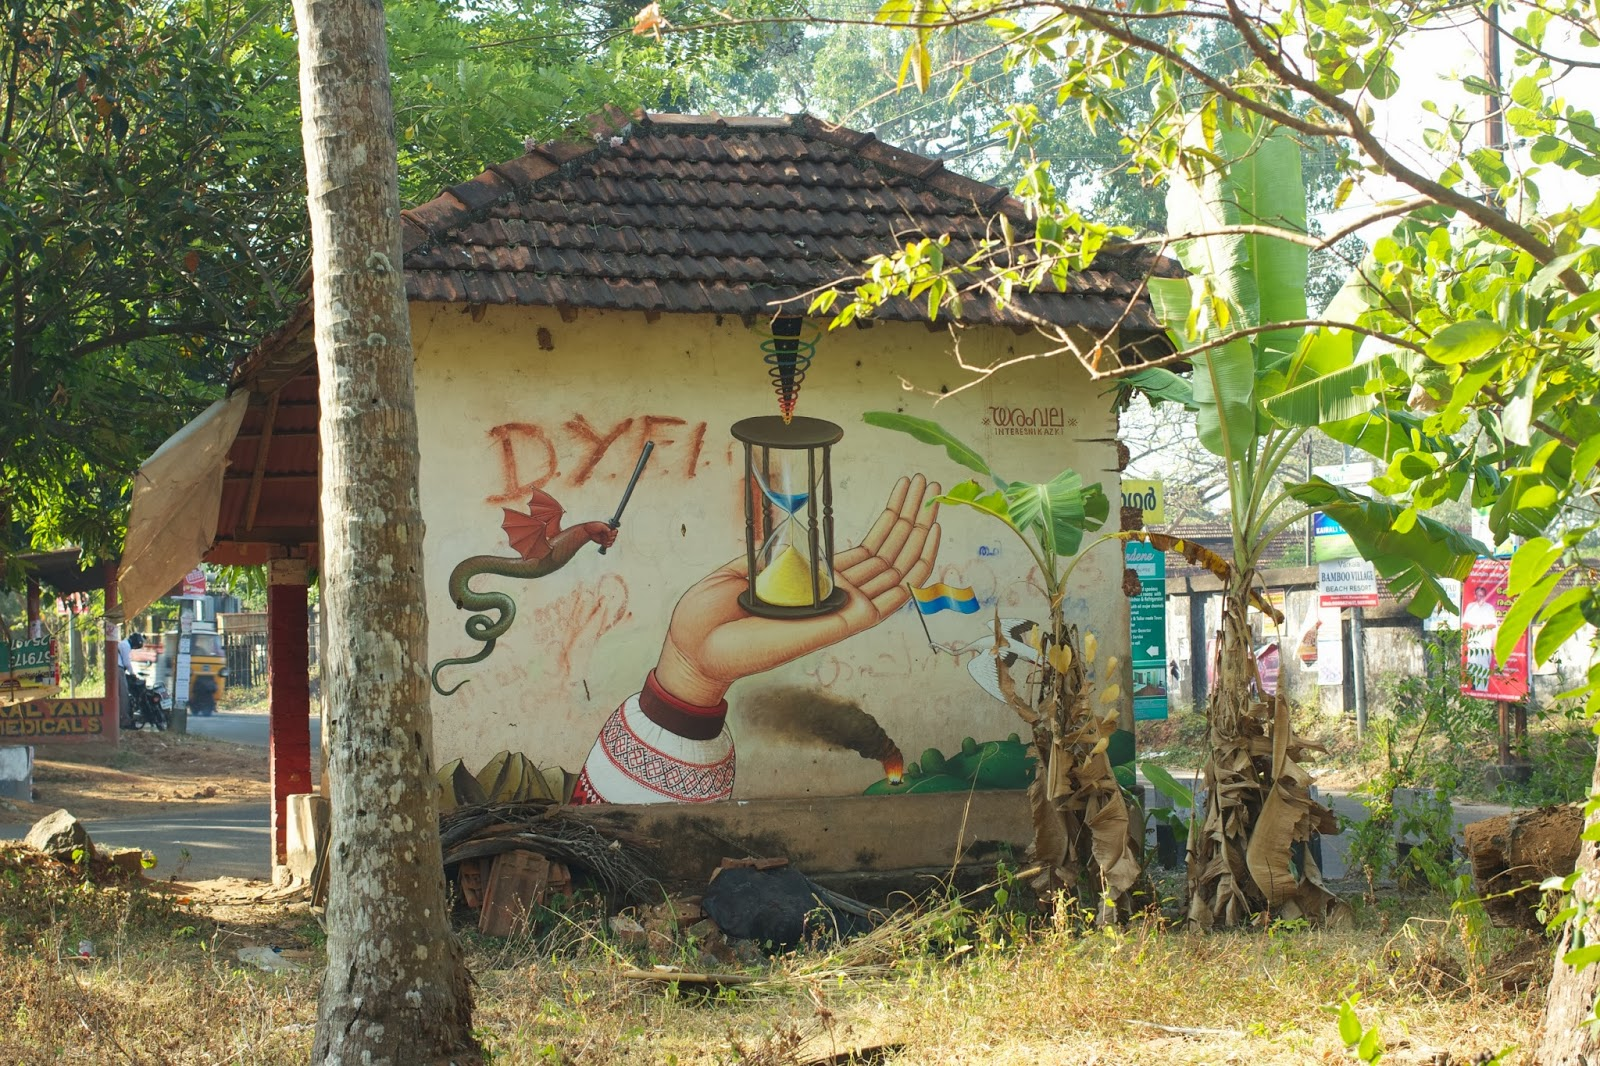 interesni-kazki-time-for-change-new-mural-in-india-01